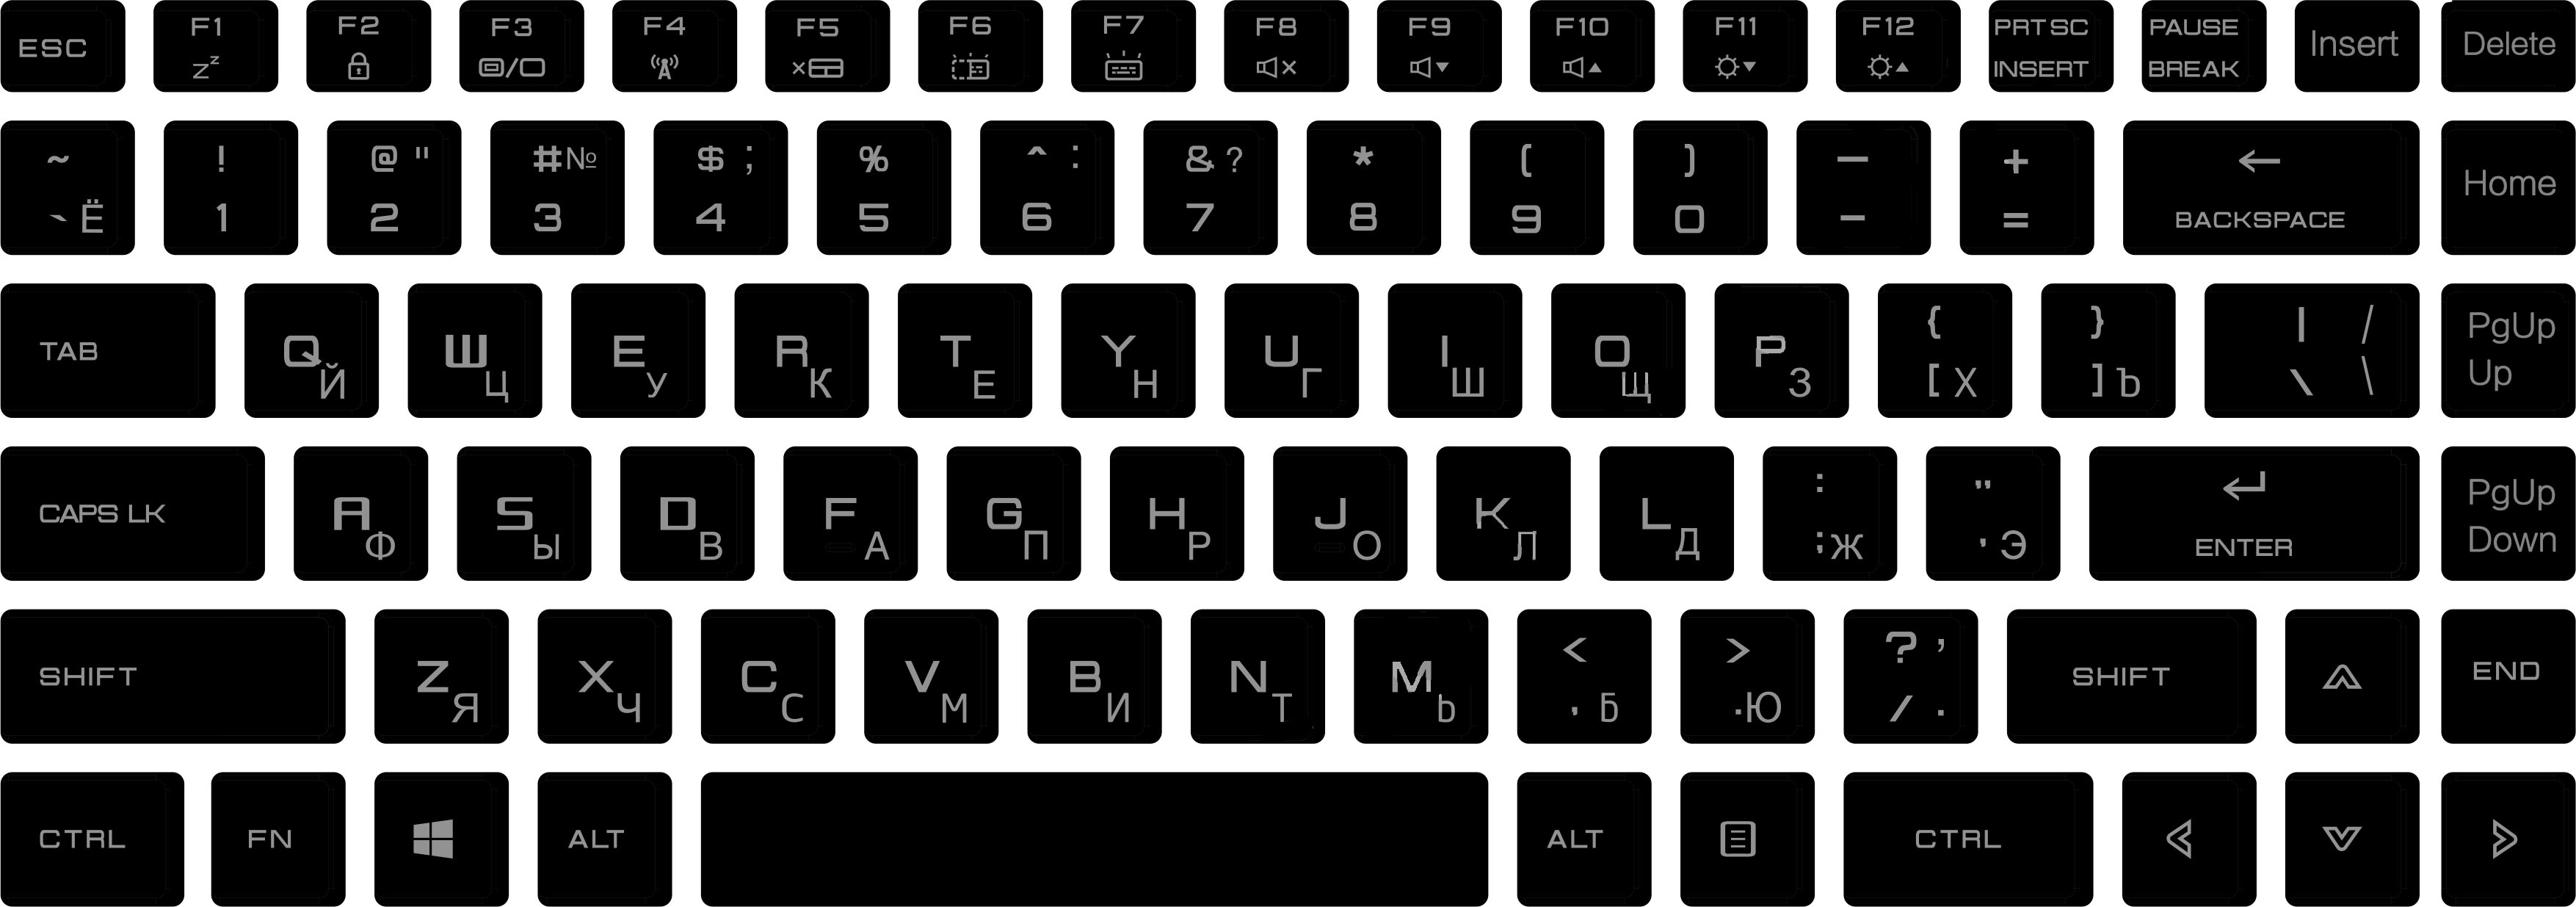 MaiBenBen XiaoMai  Russian Keyboard Cover Hold Sticker Skin-Cover Anti-Dusty Laptop Notebook